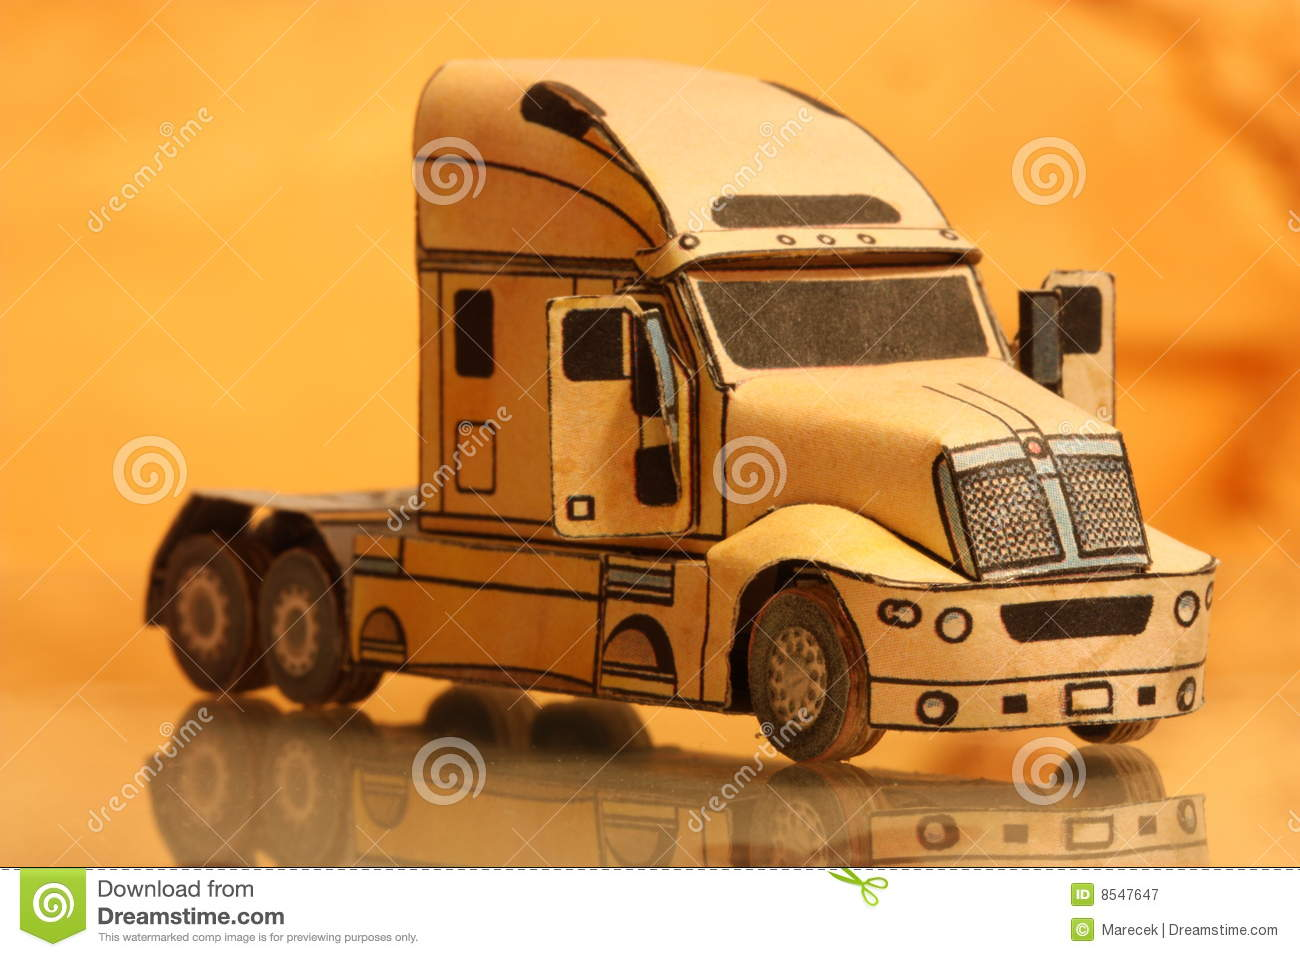 Paper model stock image  Image of paper, truck, yellow - 8547647